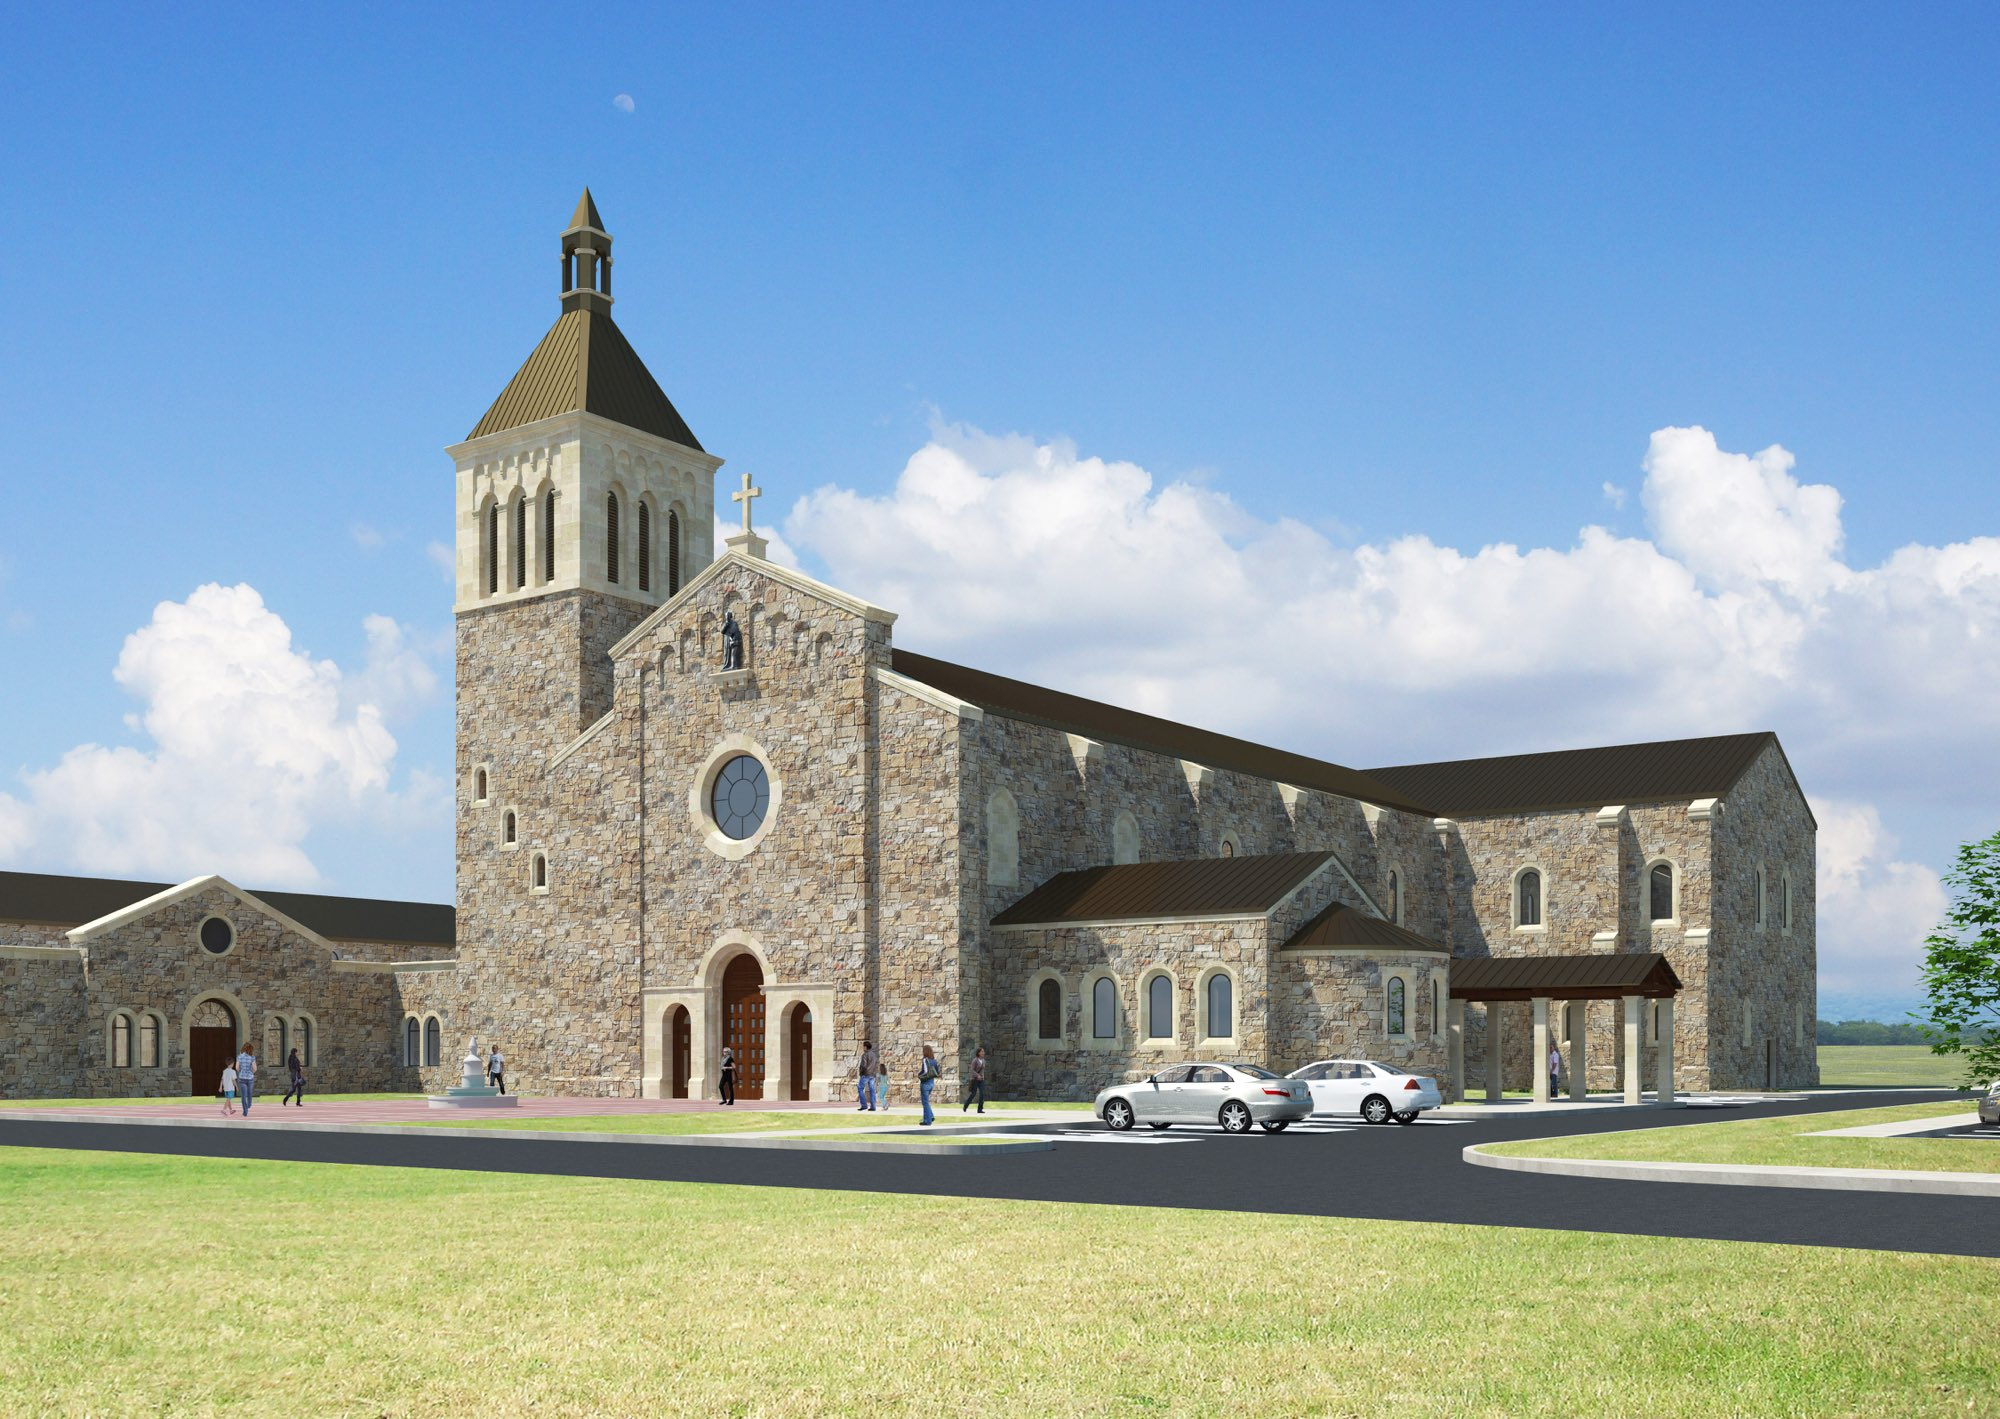 Classical cruciform stone Romanesque church with buttresses bell tower rose window and plaza by Harrison Design